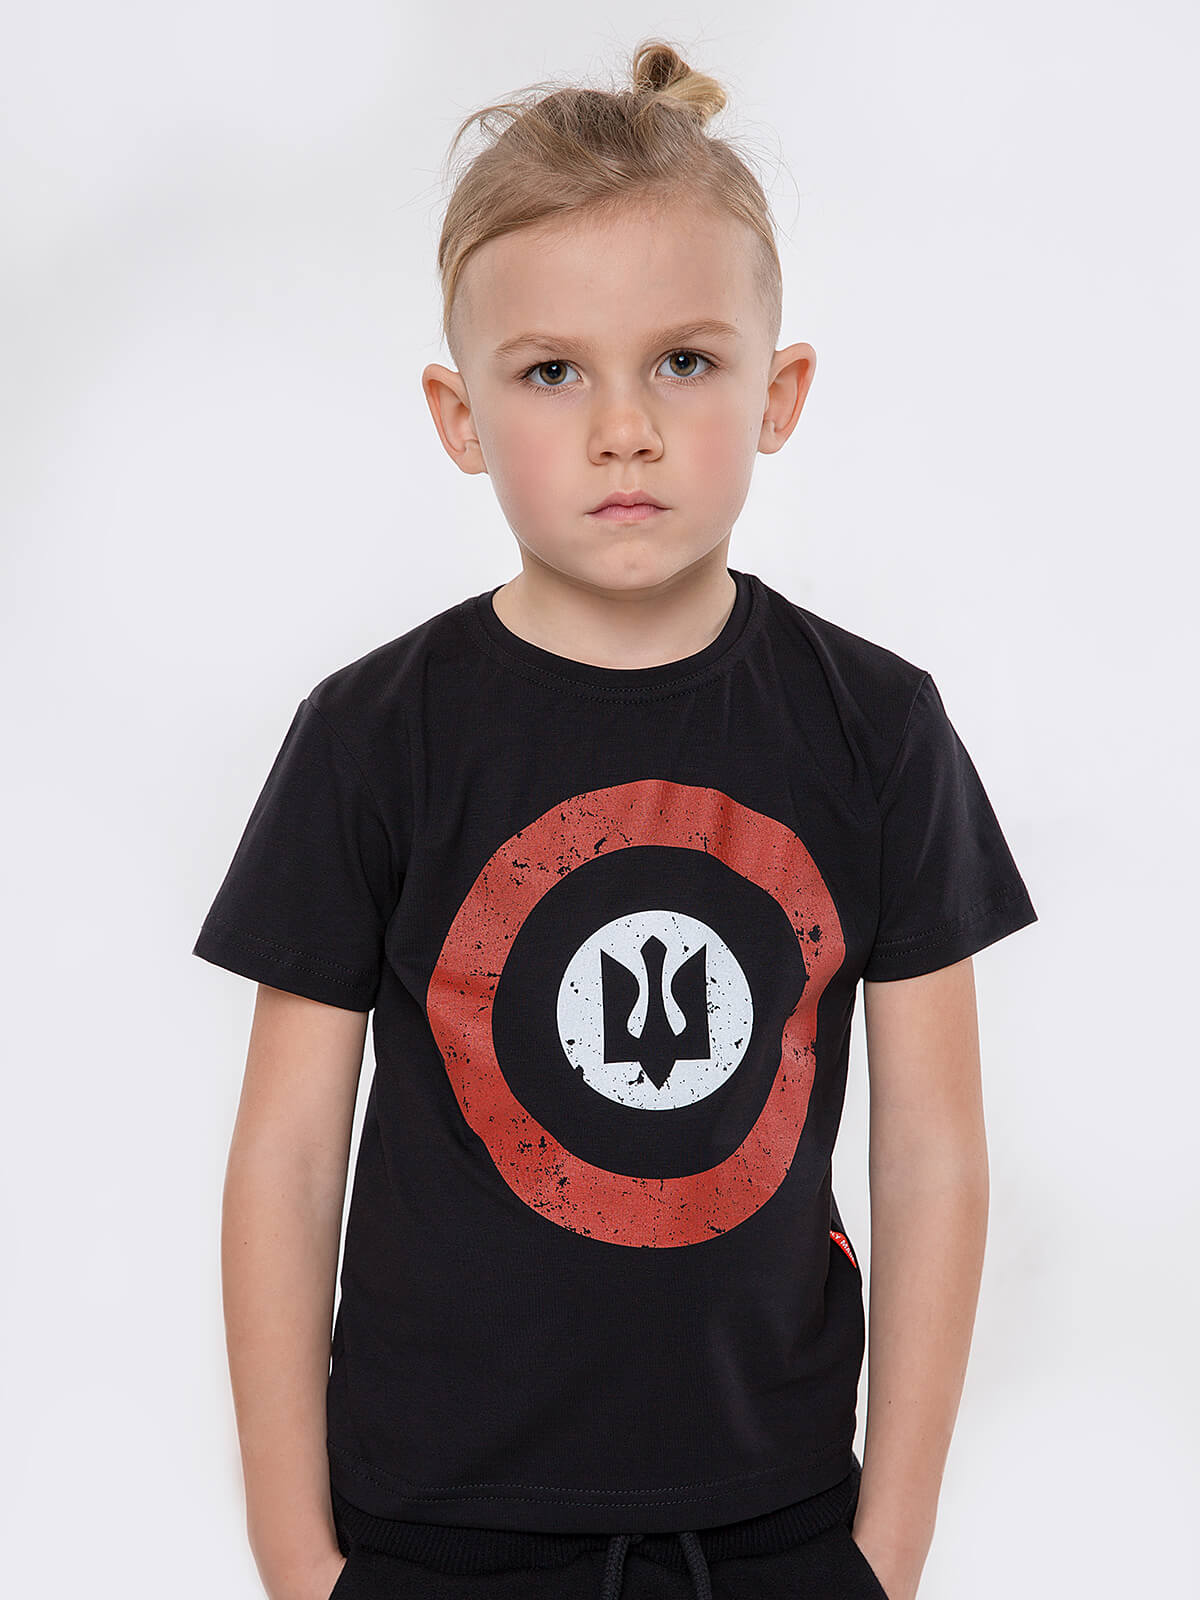 Kids T-Shirt Roundel. Color black. T-shirt: unisex, well suited for both boys and girls.